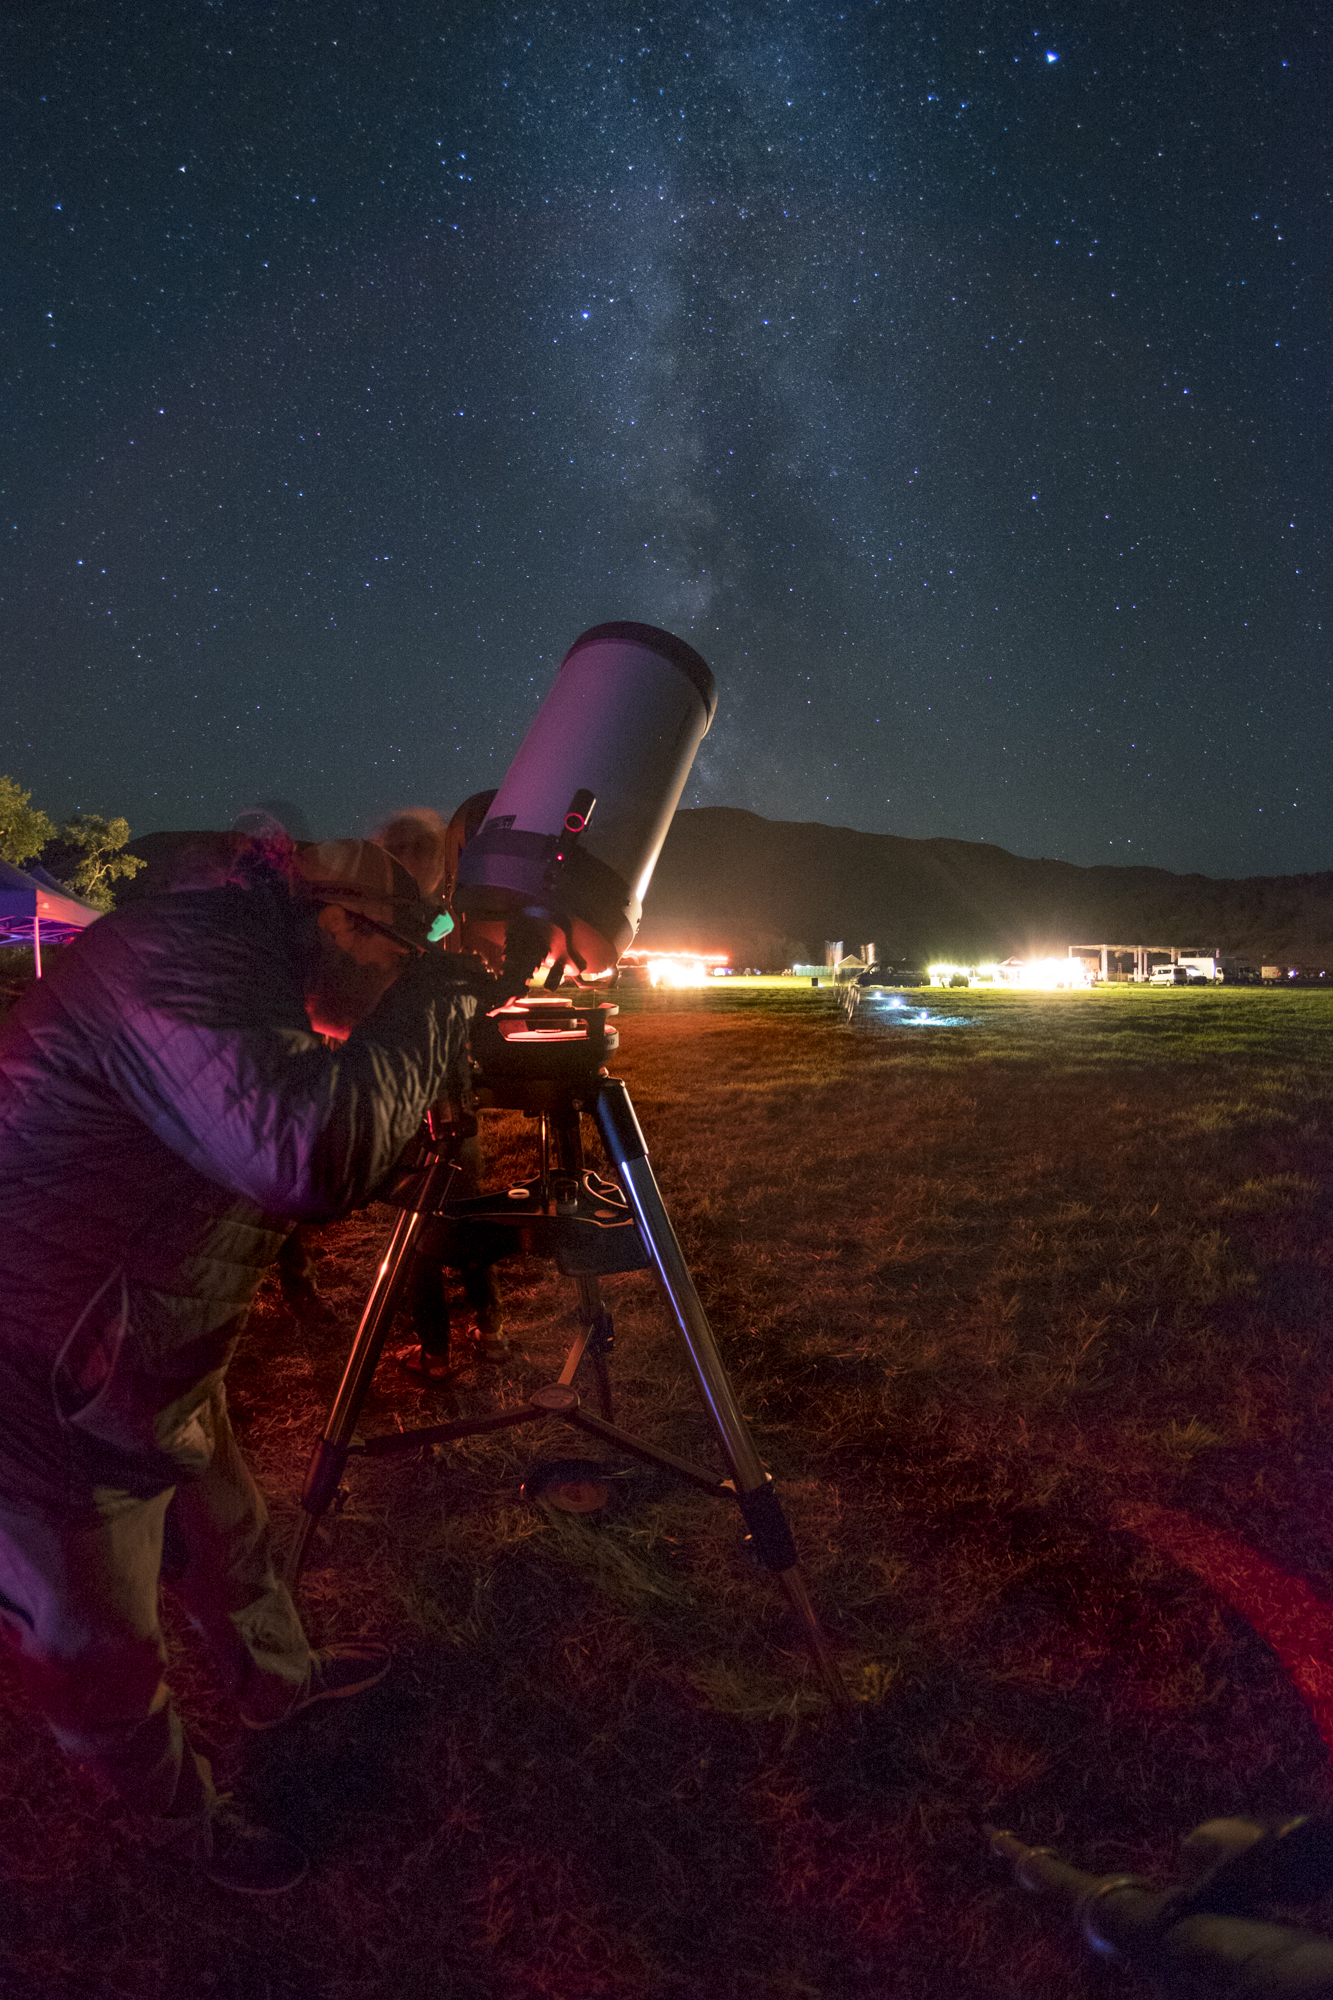 Figure 9. Michael Hollander from B&H using a telescope at the eclipse event in Oregon. Photographed with a  Fuji X-T1  and a  7artisans 7.5mm Fisheye f/2.8  lens at 30 seconds, f/2.8, ISO 6400.